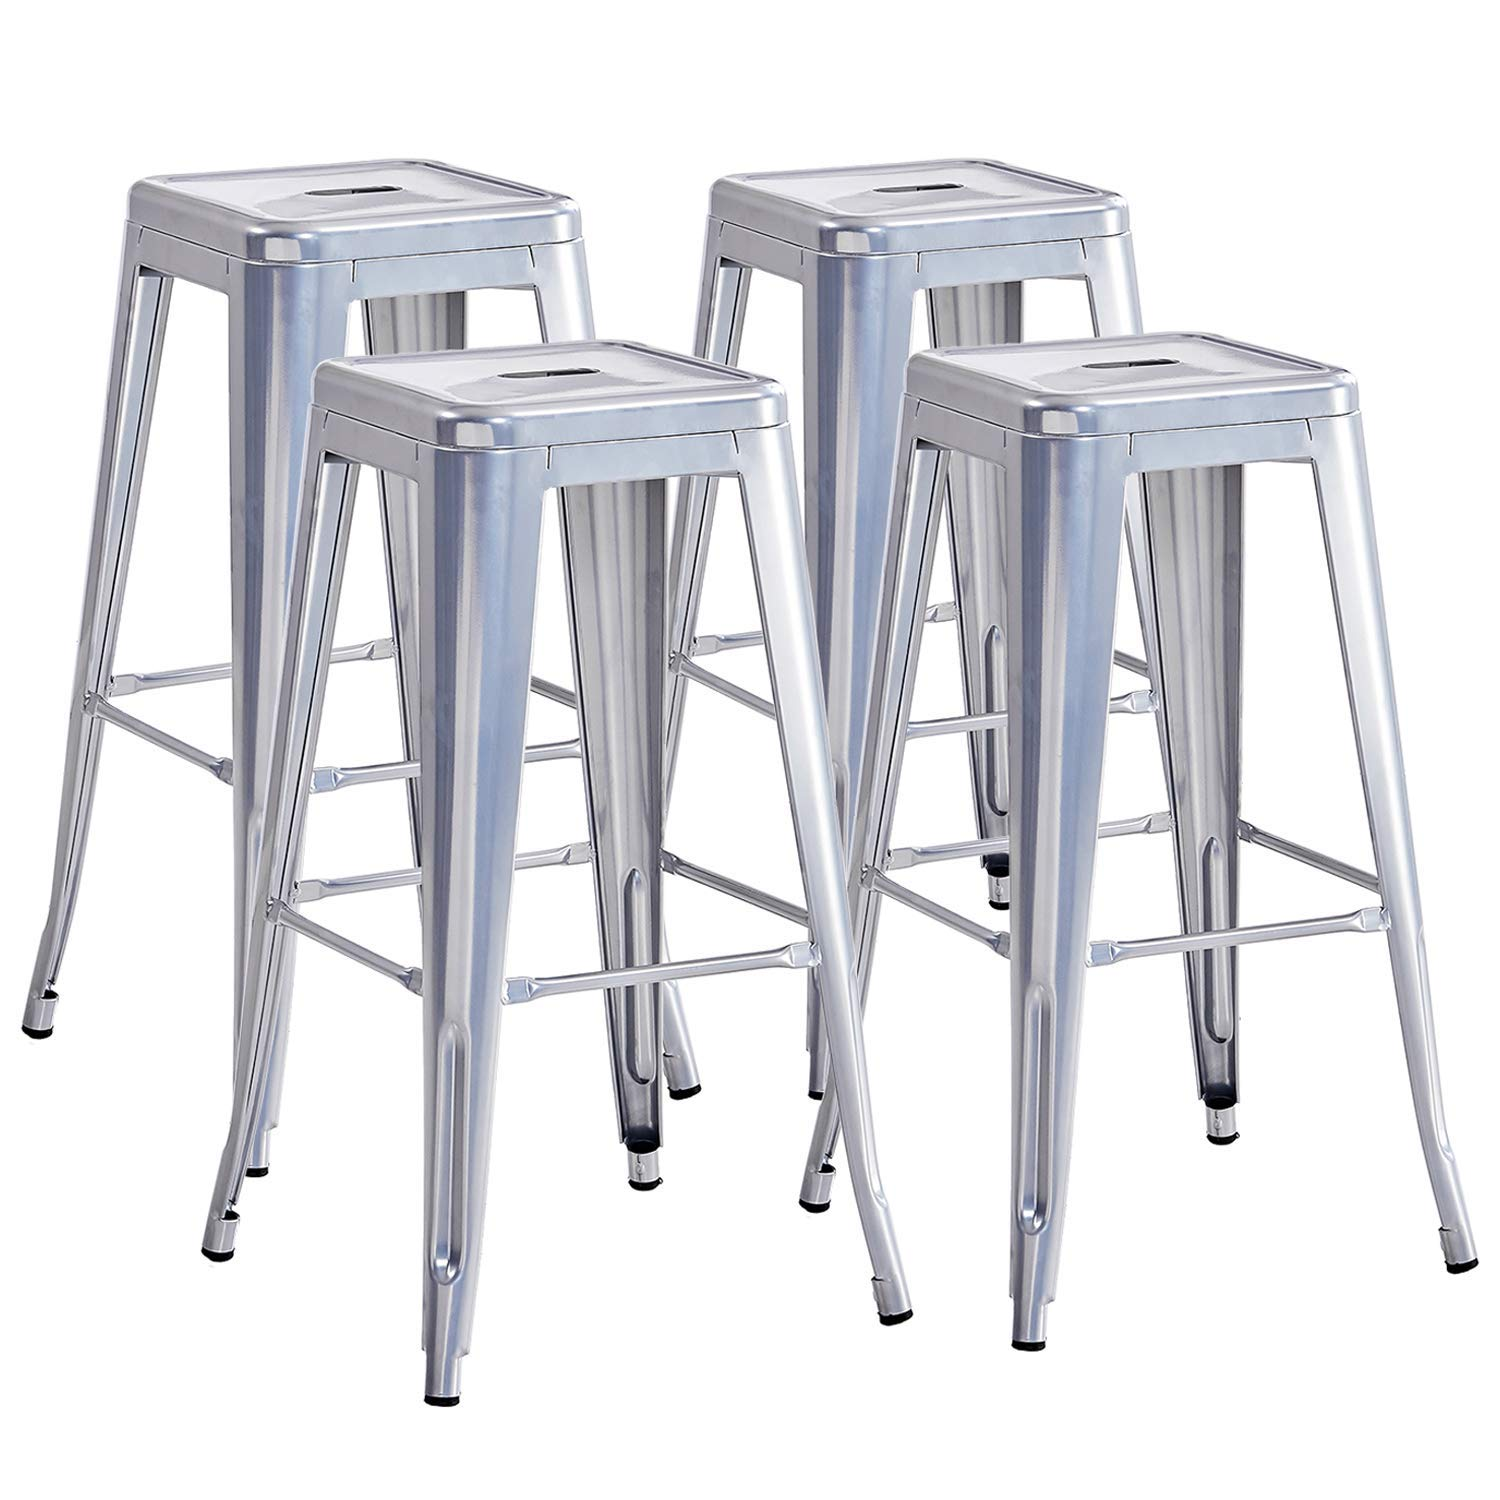 Details About Set Of 4 Industrial Metal Bar Stools 30 High Backless Stackable Tolix Style